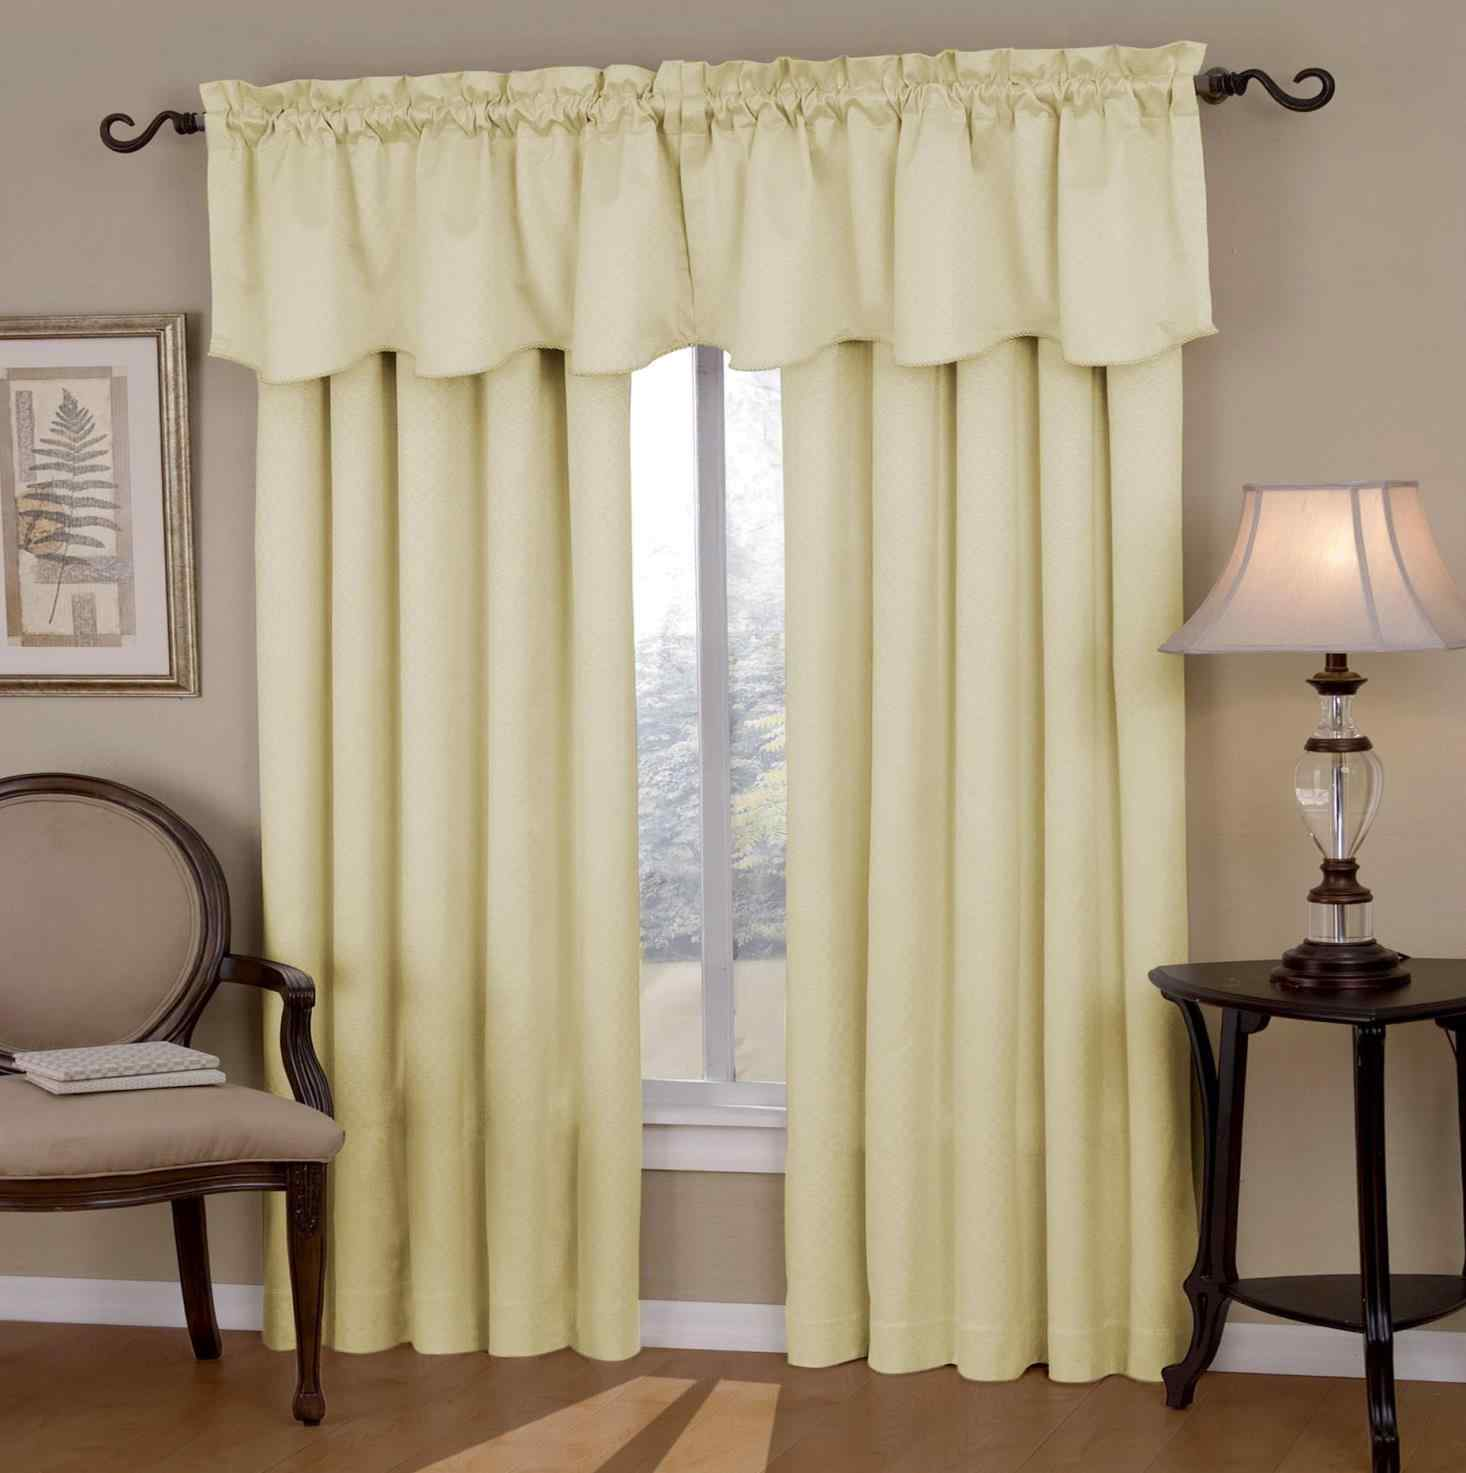 Ruffle Curtains Walmart | Ruffle Blackout Curtains | Cream Ruffle Curtains